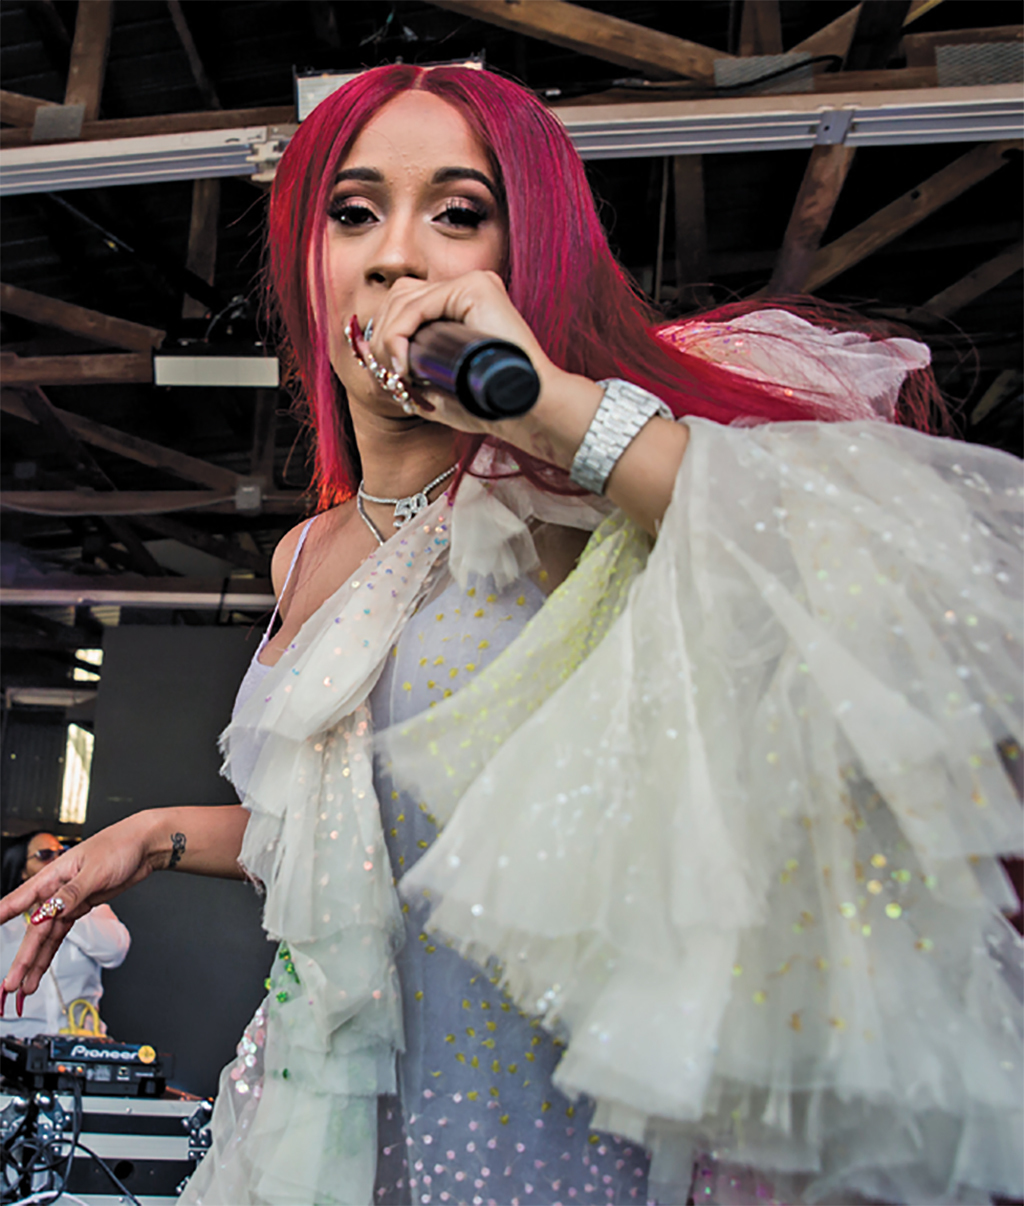 Cardi B performing at SXSW, Austin, March 18, 2017. Photo: Carlos Gonzalez/Redux. © The New York Times.